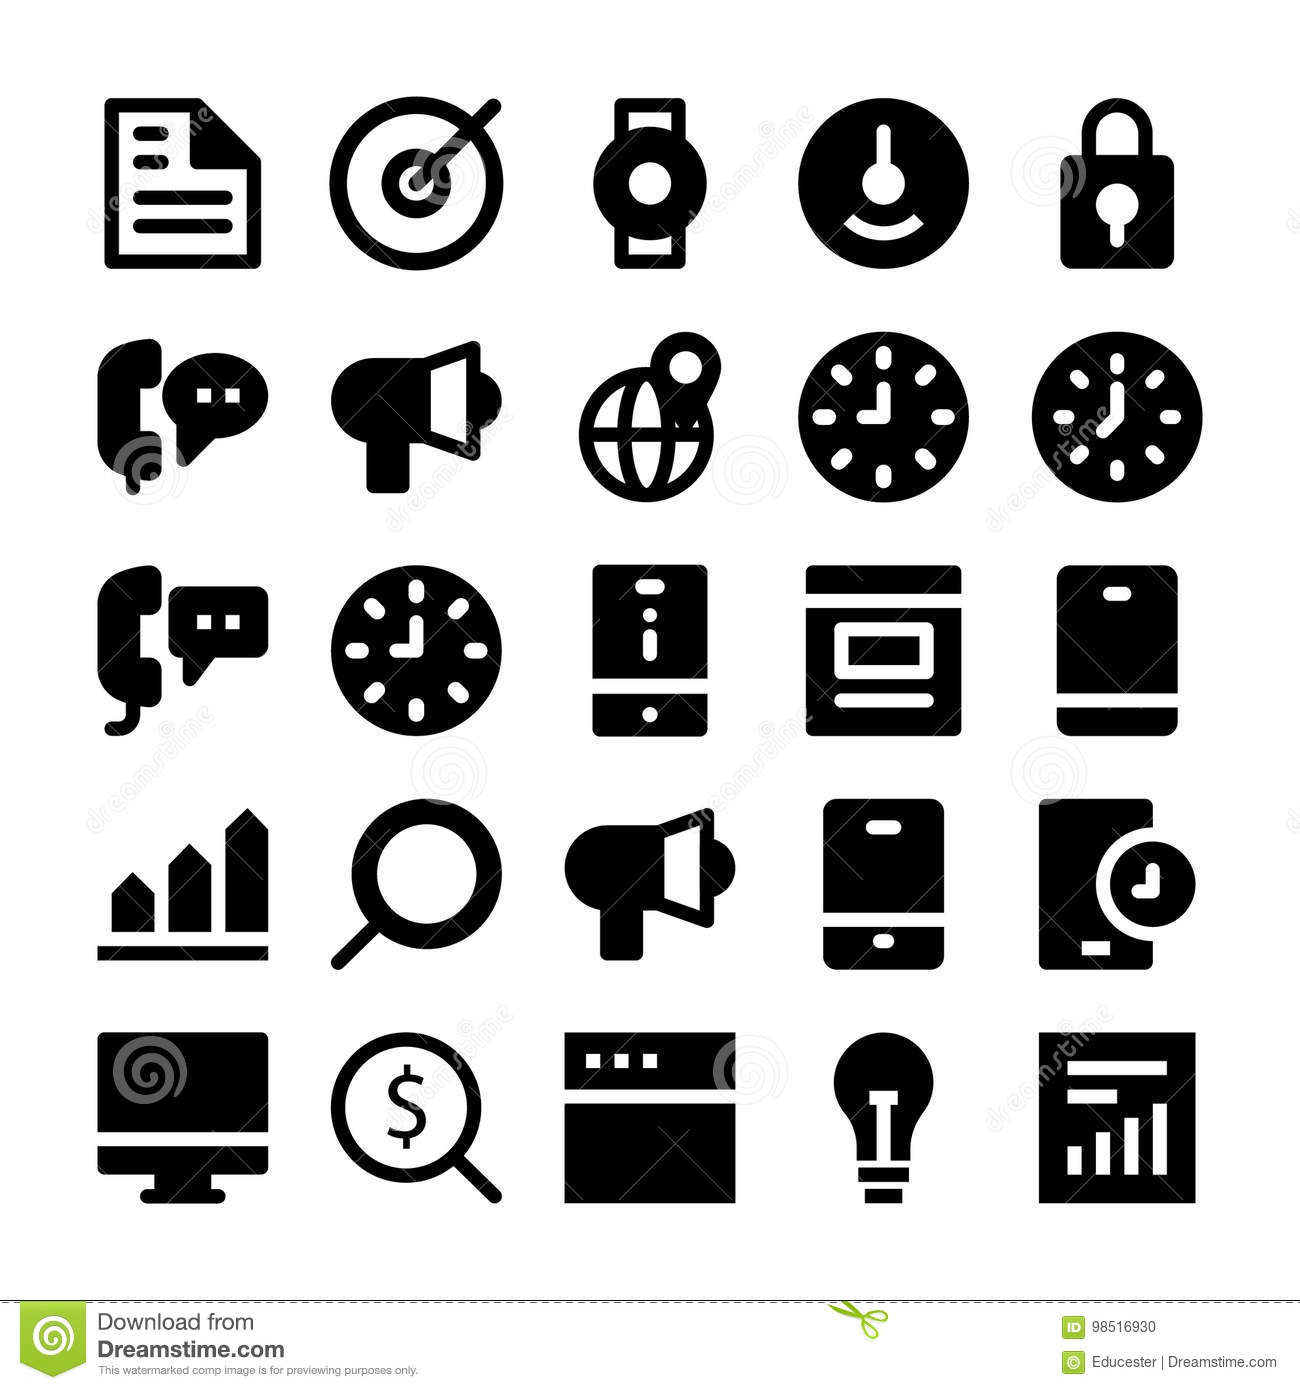 SEO and Marketing Solid Icons 2